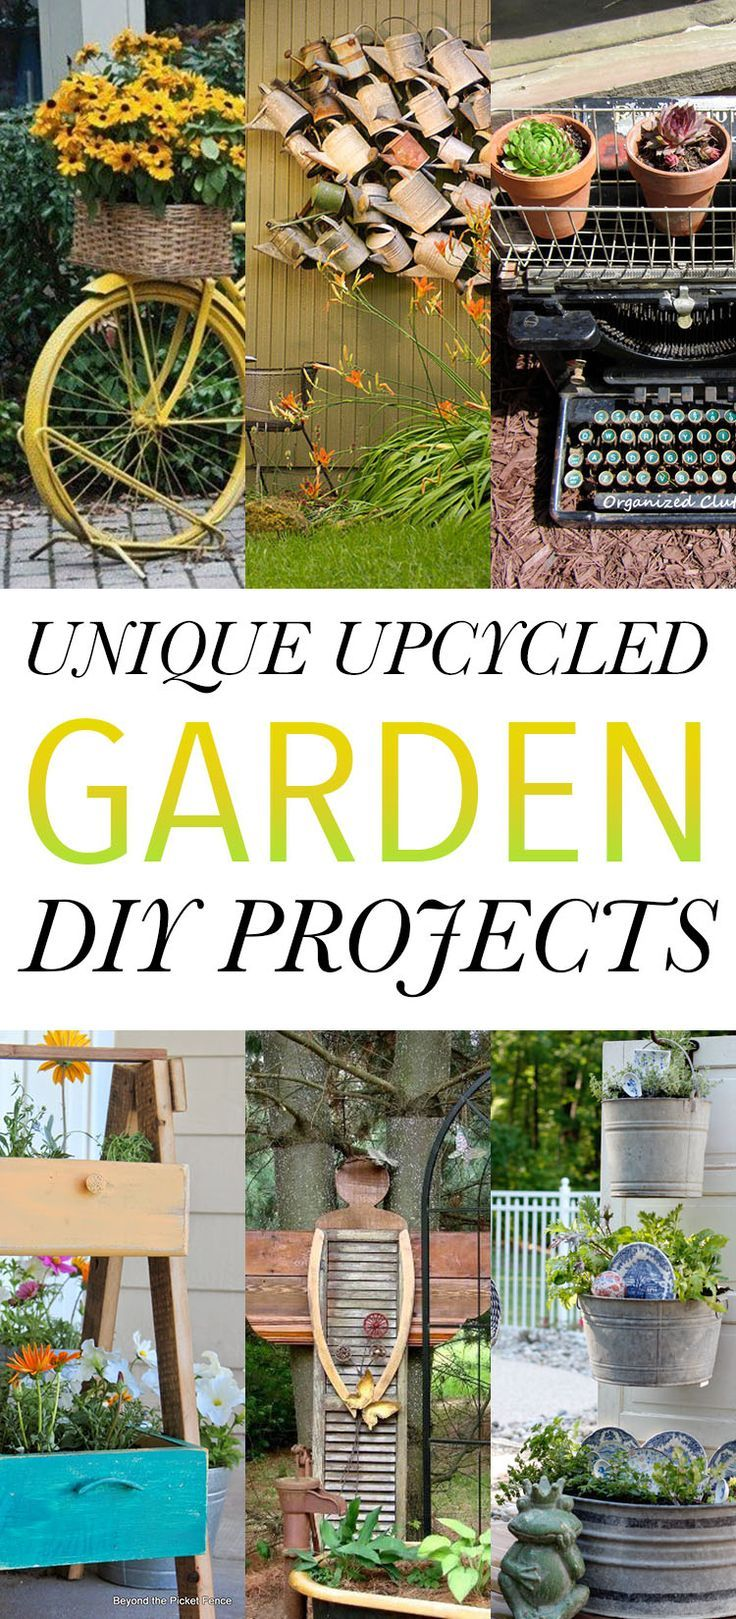 Unique Upcycled Garden Diy Projects The Cottage Market 400 x 300